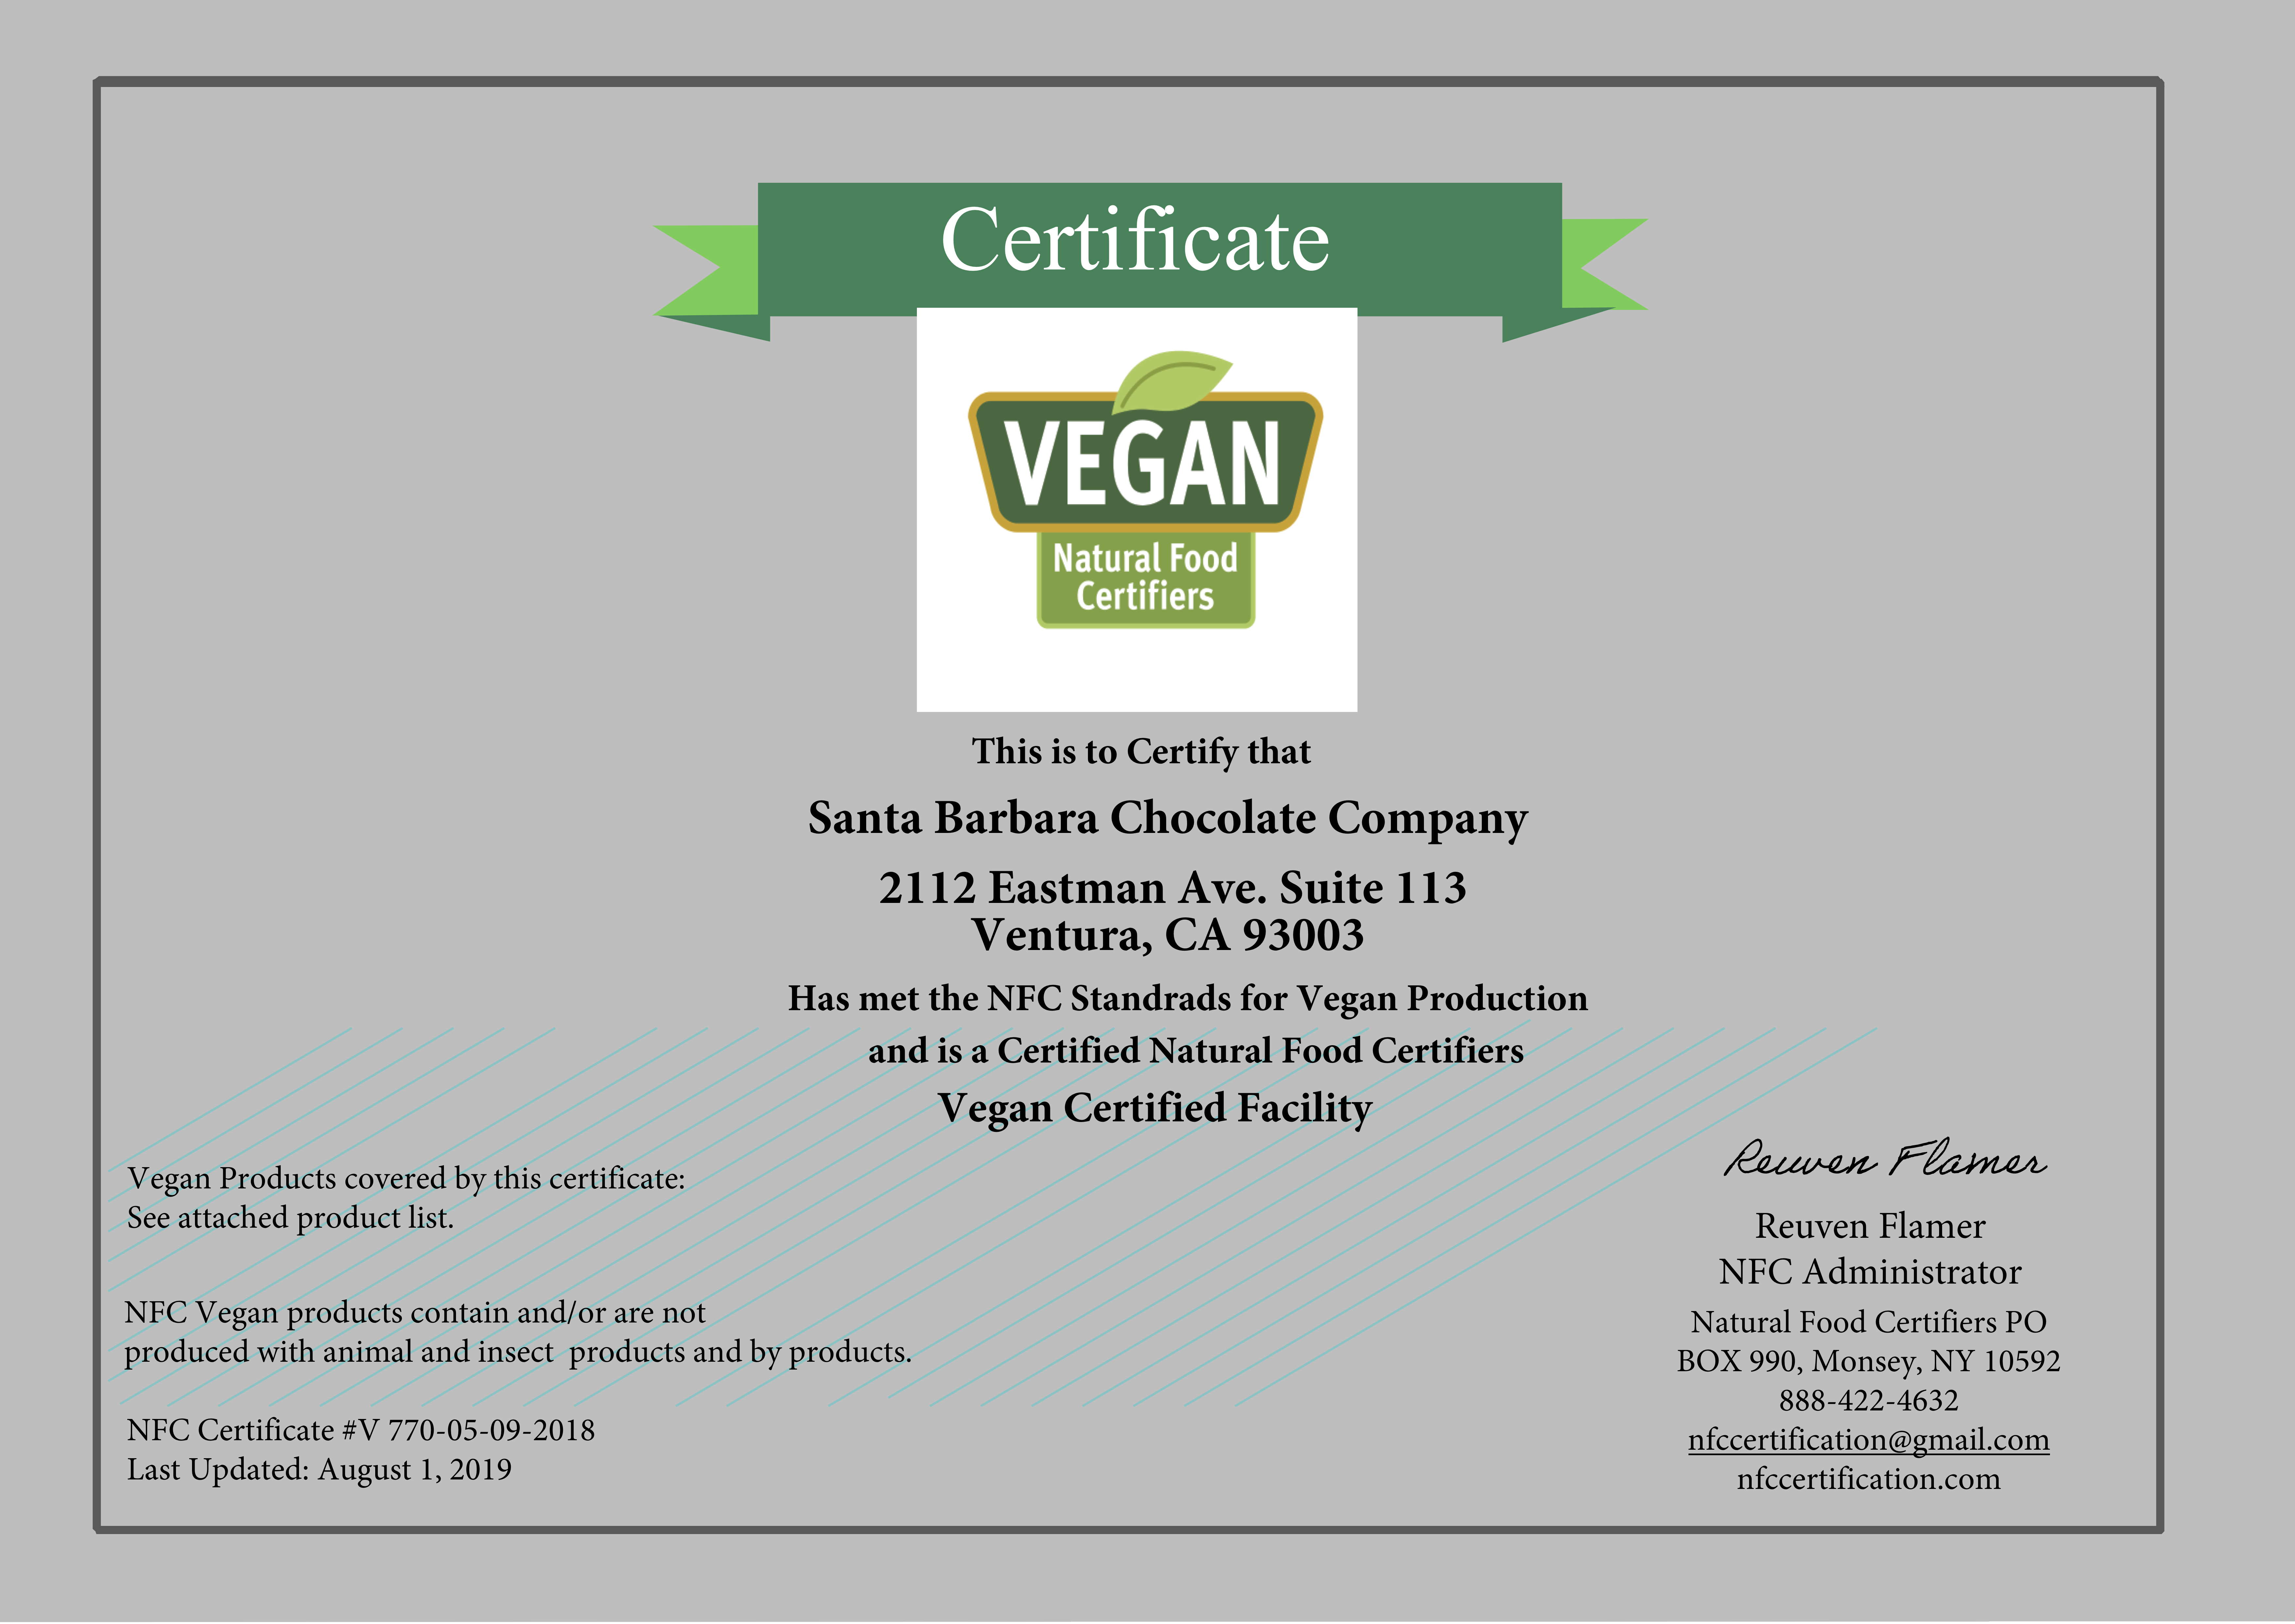 santa-barbara-chocolate-vegan-certification-2019-2020-page-1.jpg